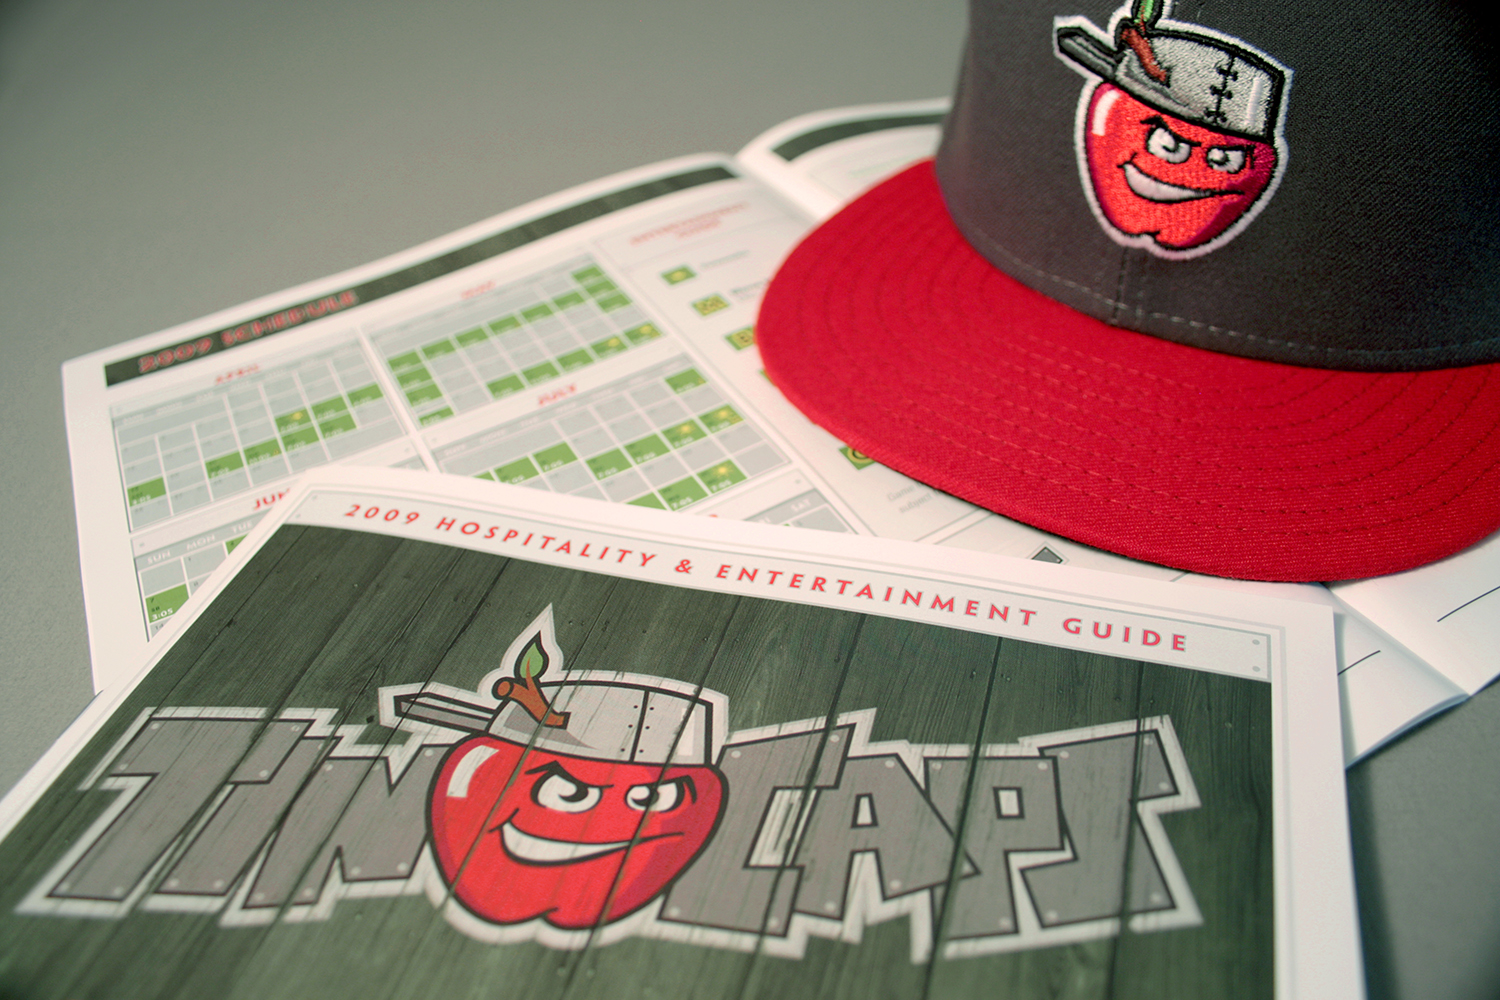 TinCaps Brochure and Hat.jpg